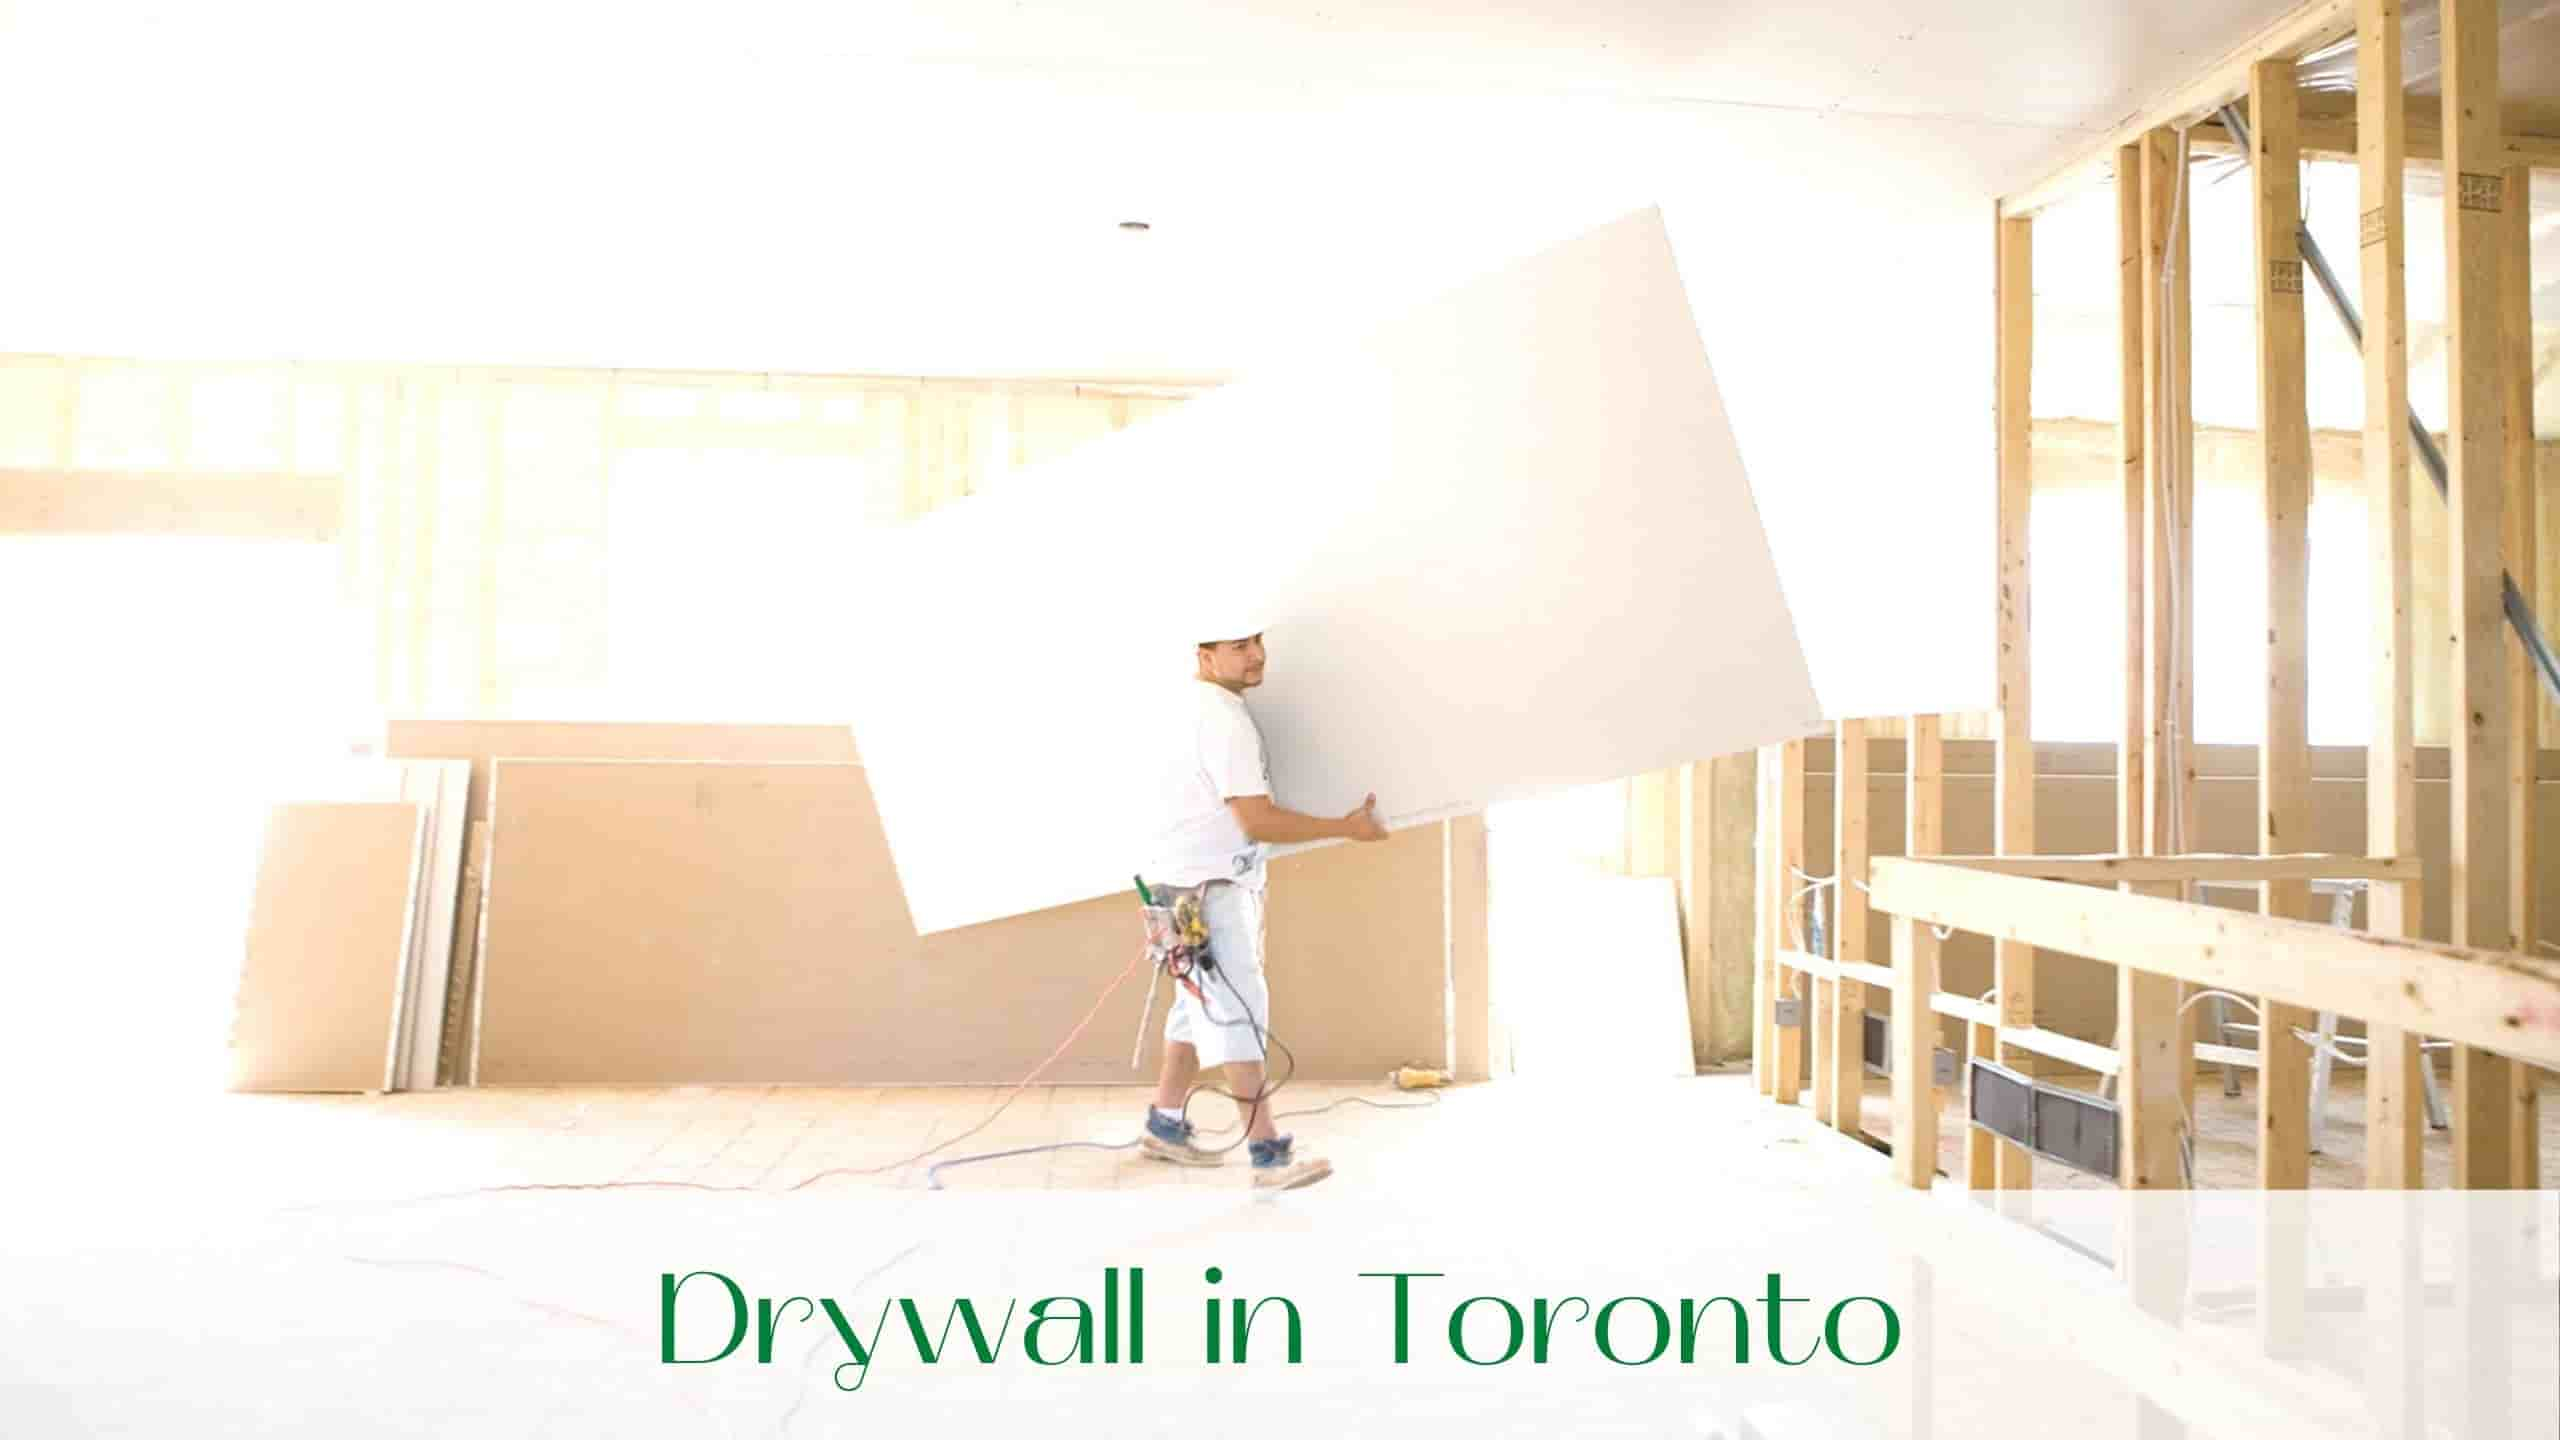 image-drywall-in-Toronto